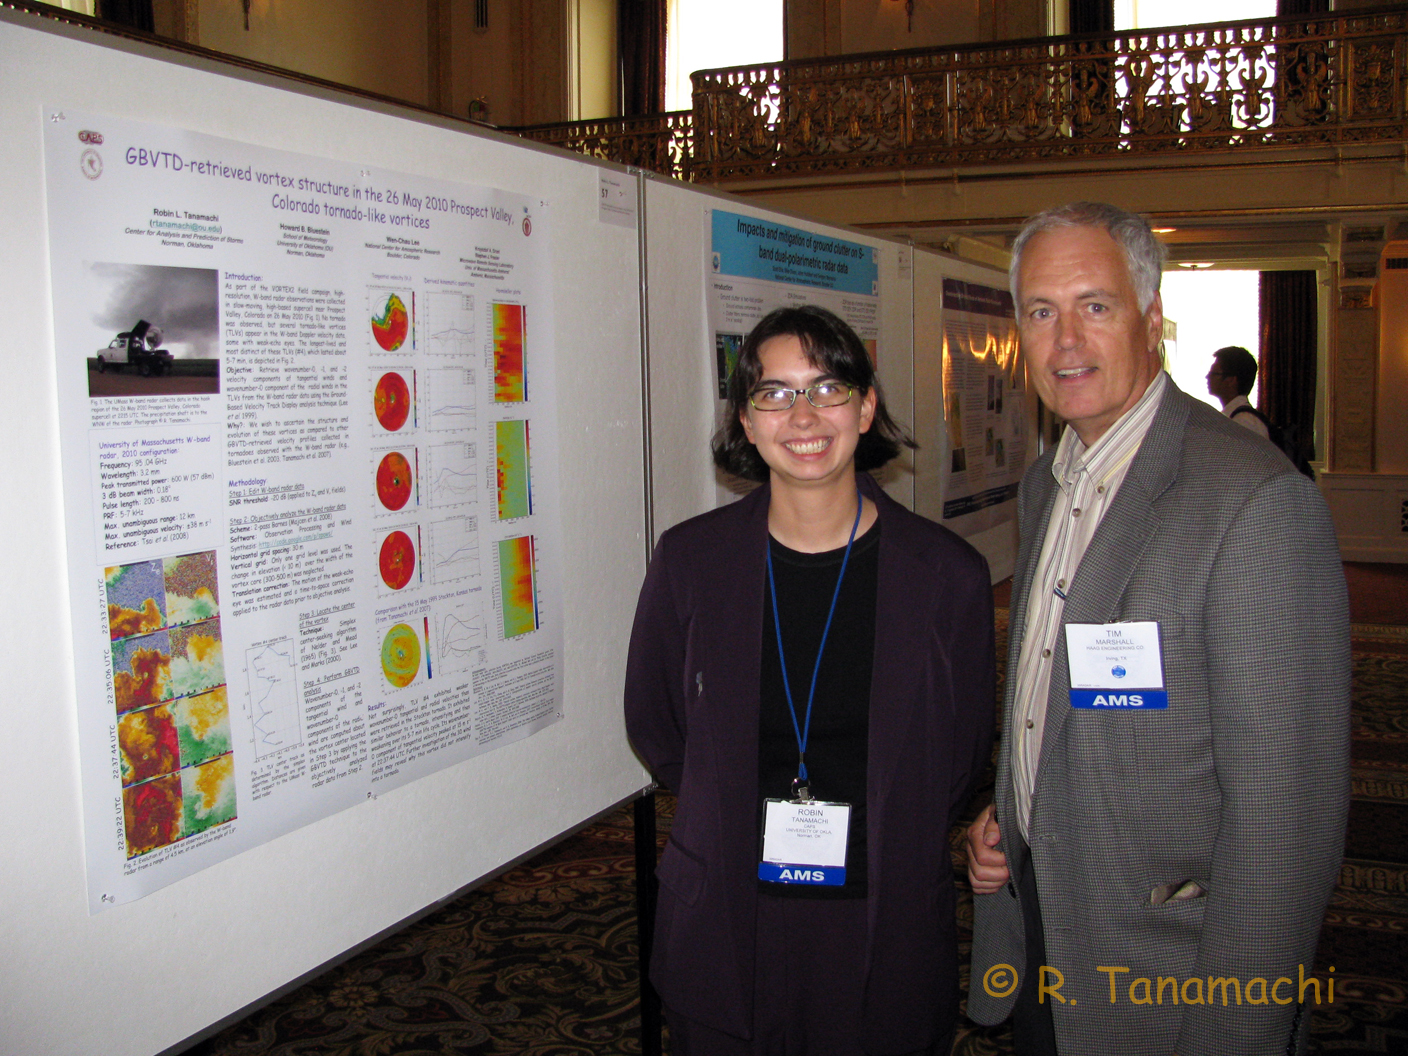 Tim Marshall visits my radar conference poster